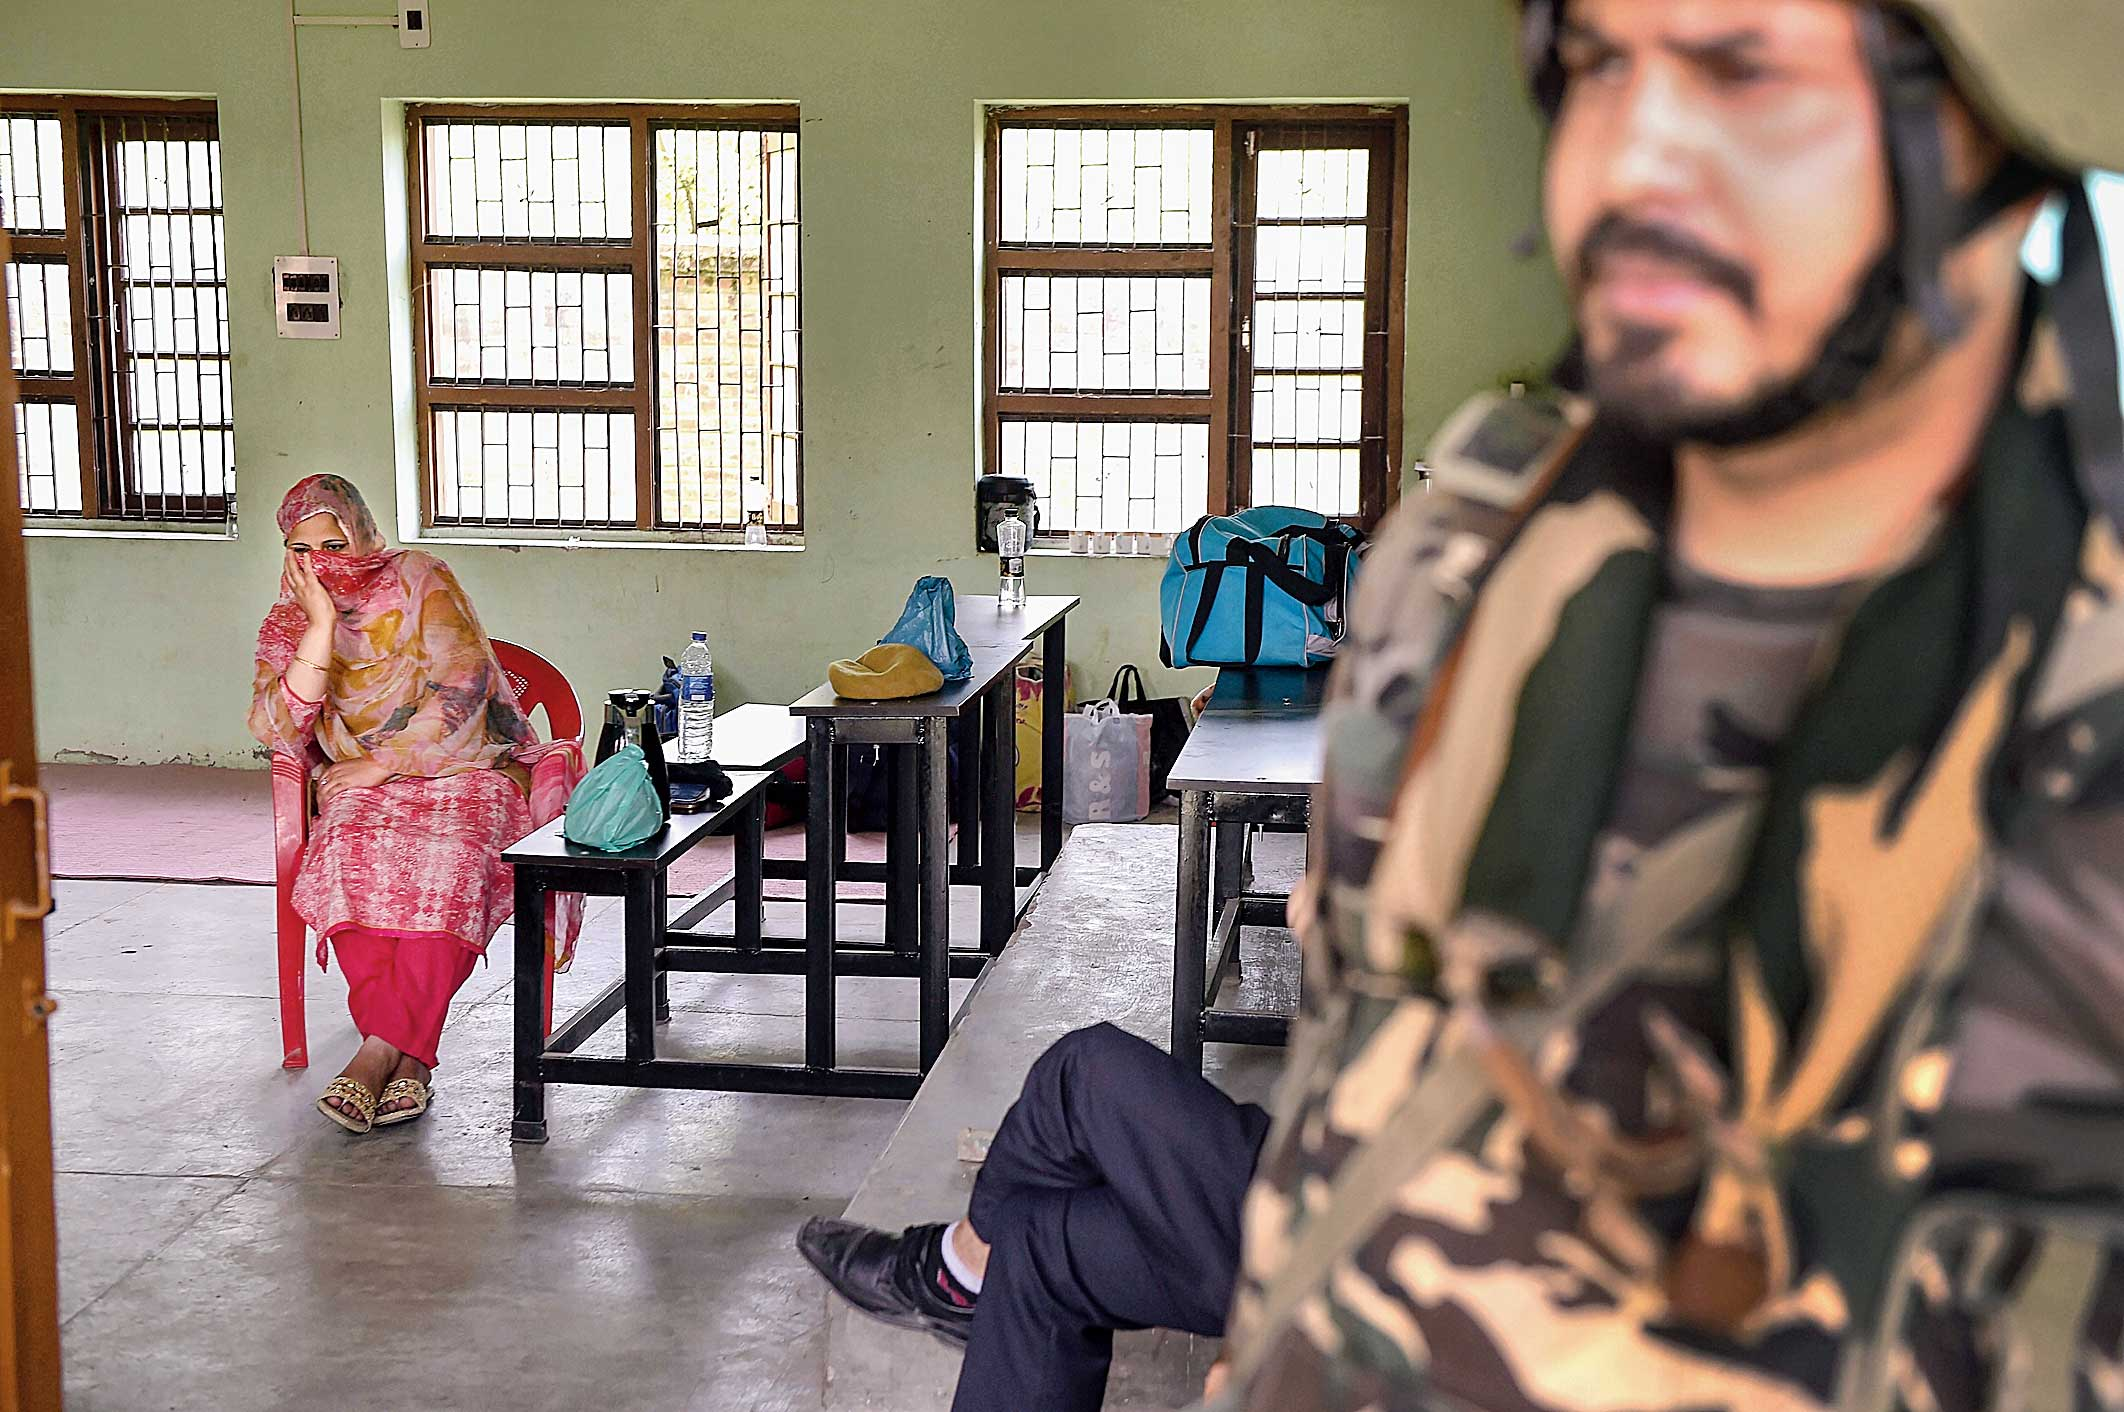 A security person stands guard as an election official waits for voters at a polling station in Anantnag on Tuesday.